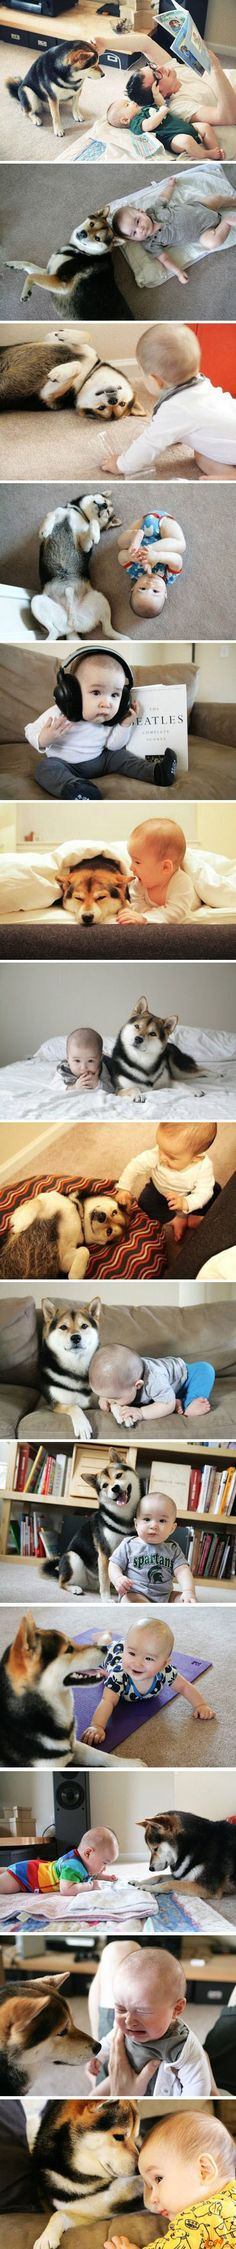 a baby grew up with a dog